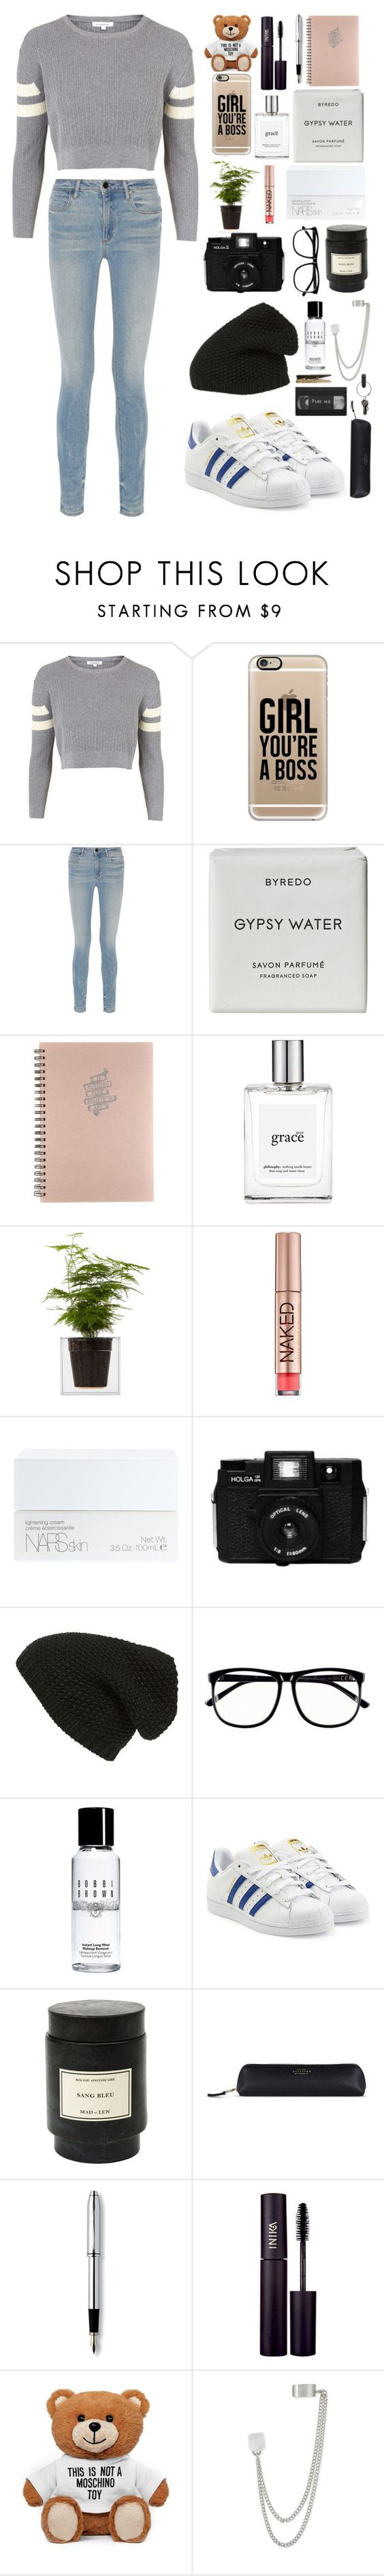 """Hayley"" by roxannecwl on Polyvore featuring Topshop, Casetify, Alexander Wang…"